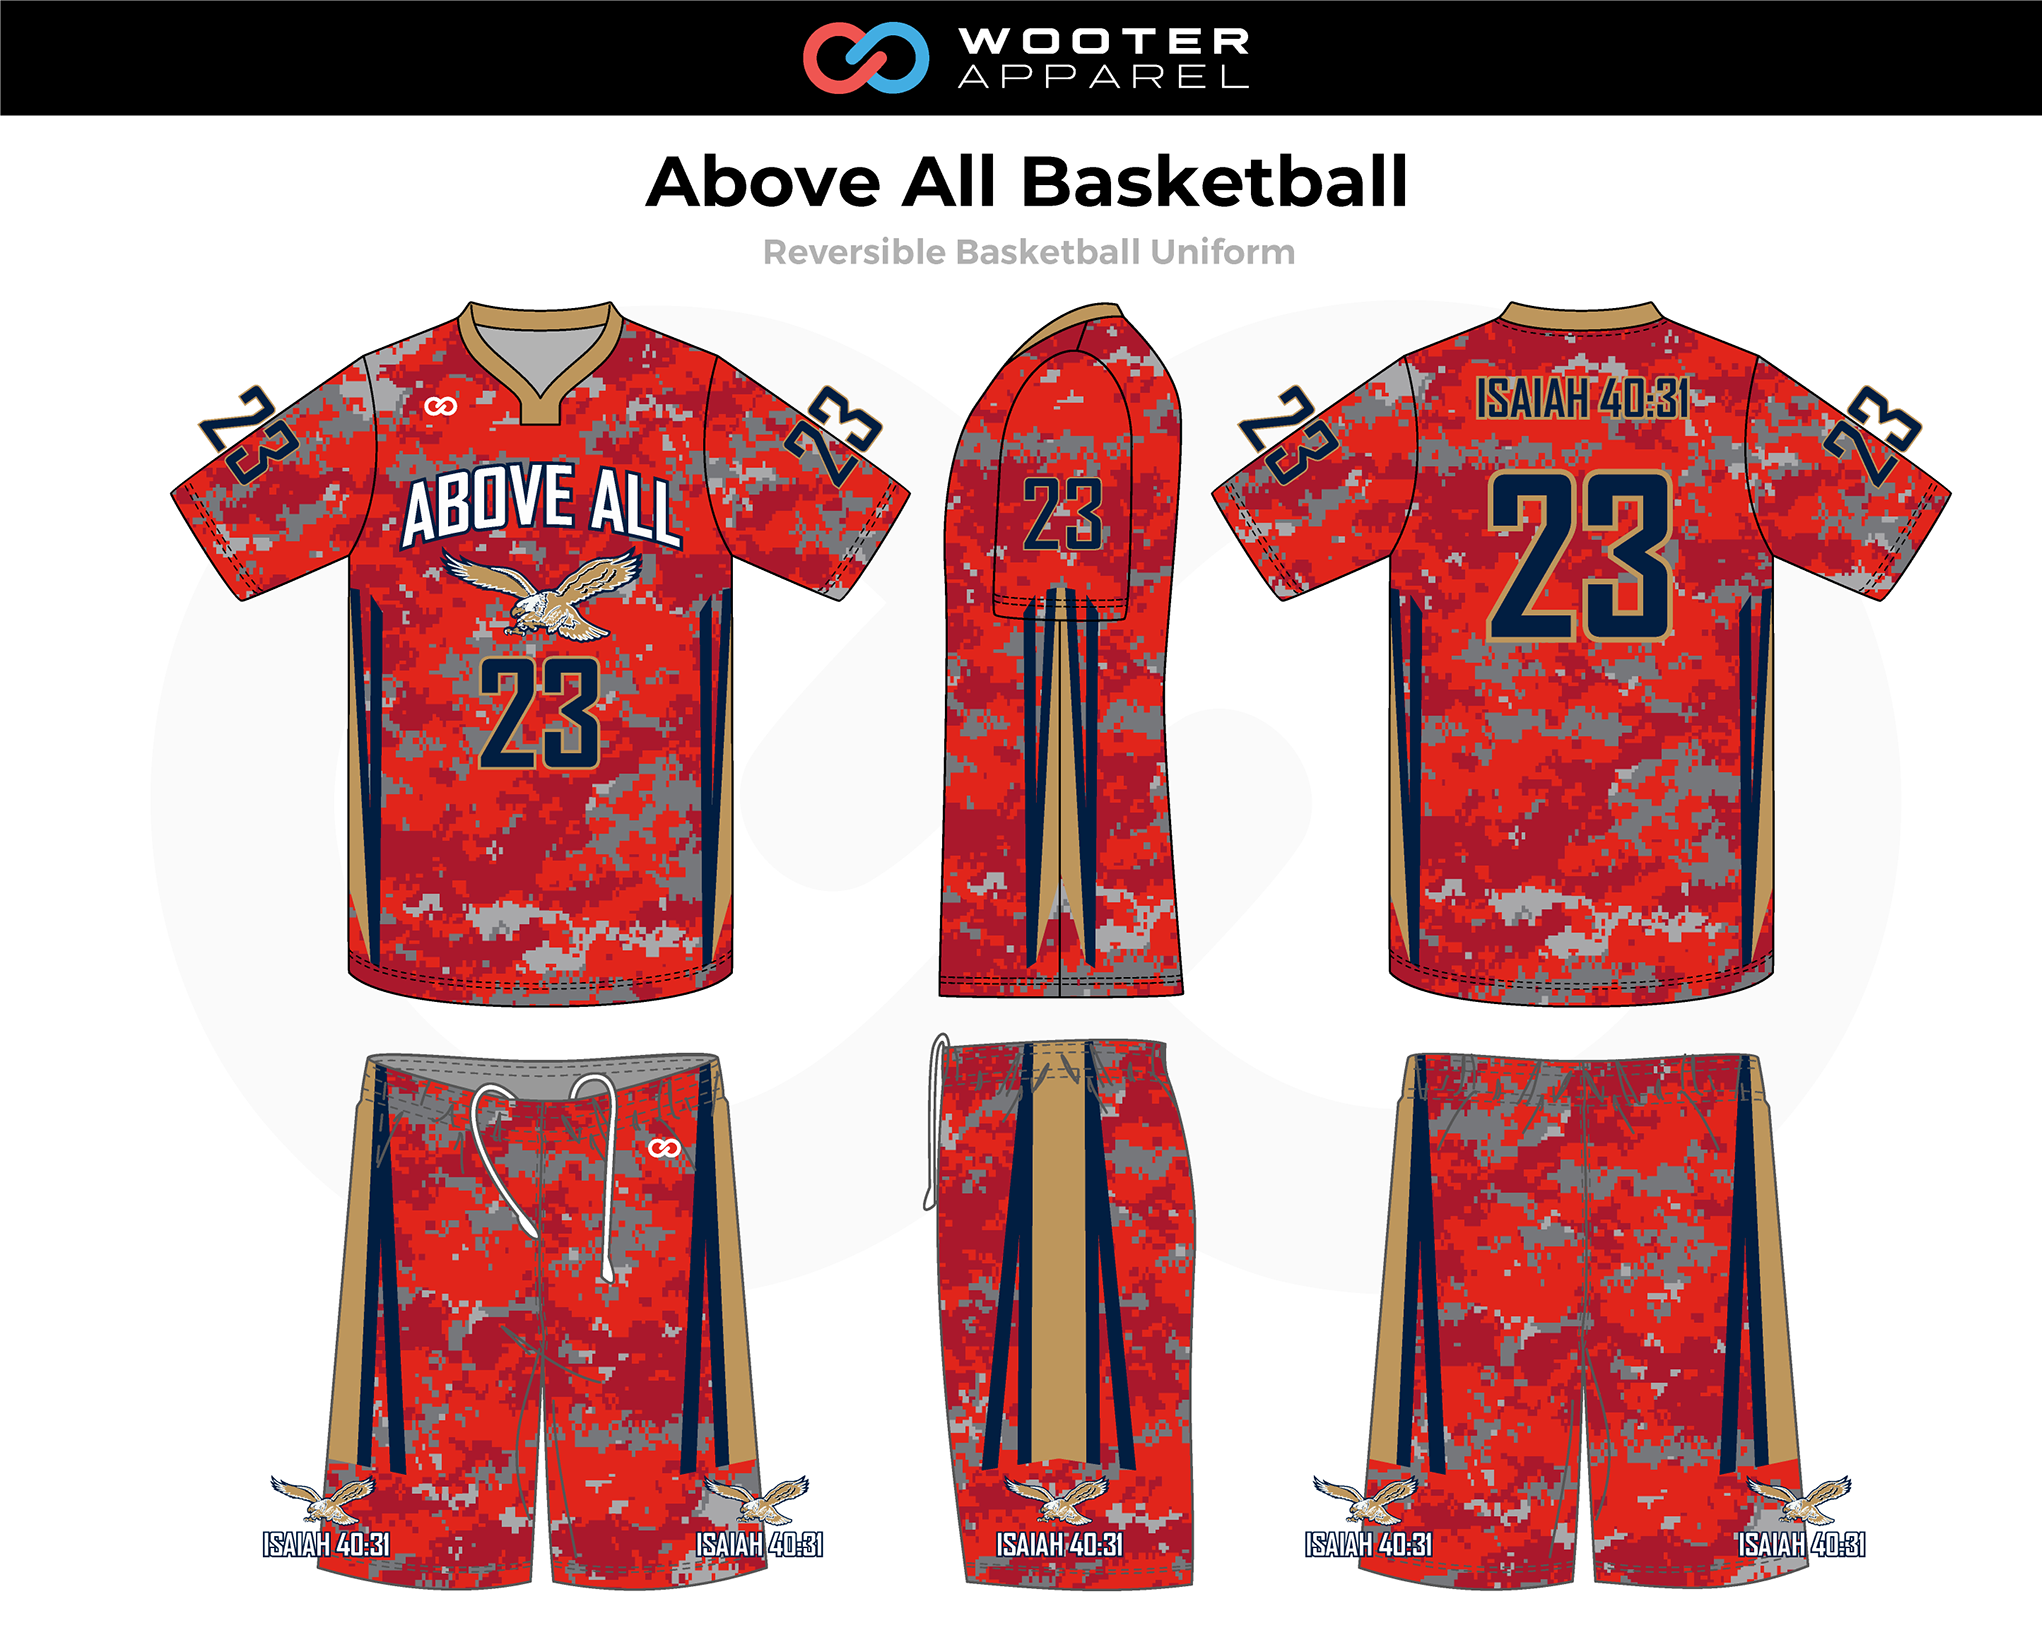 ABOVE ALL Red Blue Beige White Reversible Basketball Uniform, Jersey and Shorts